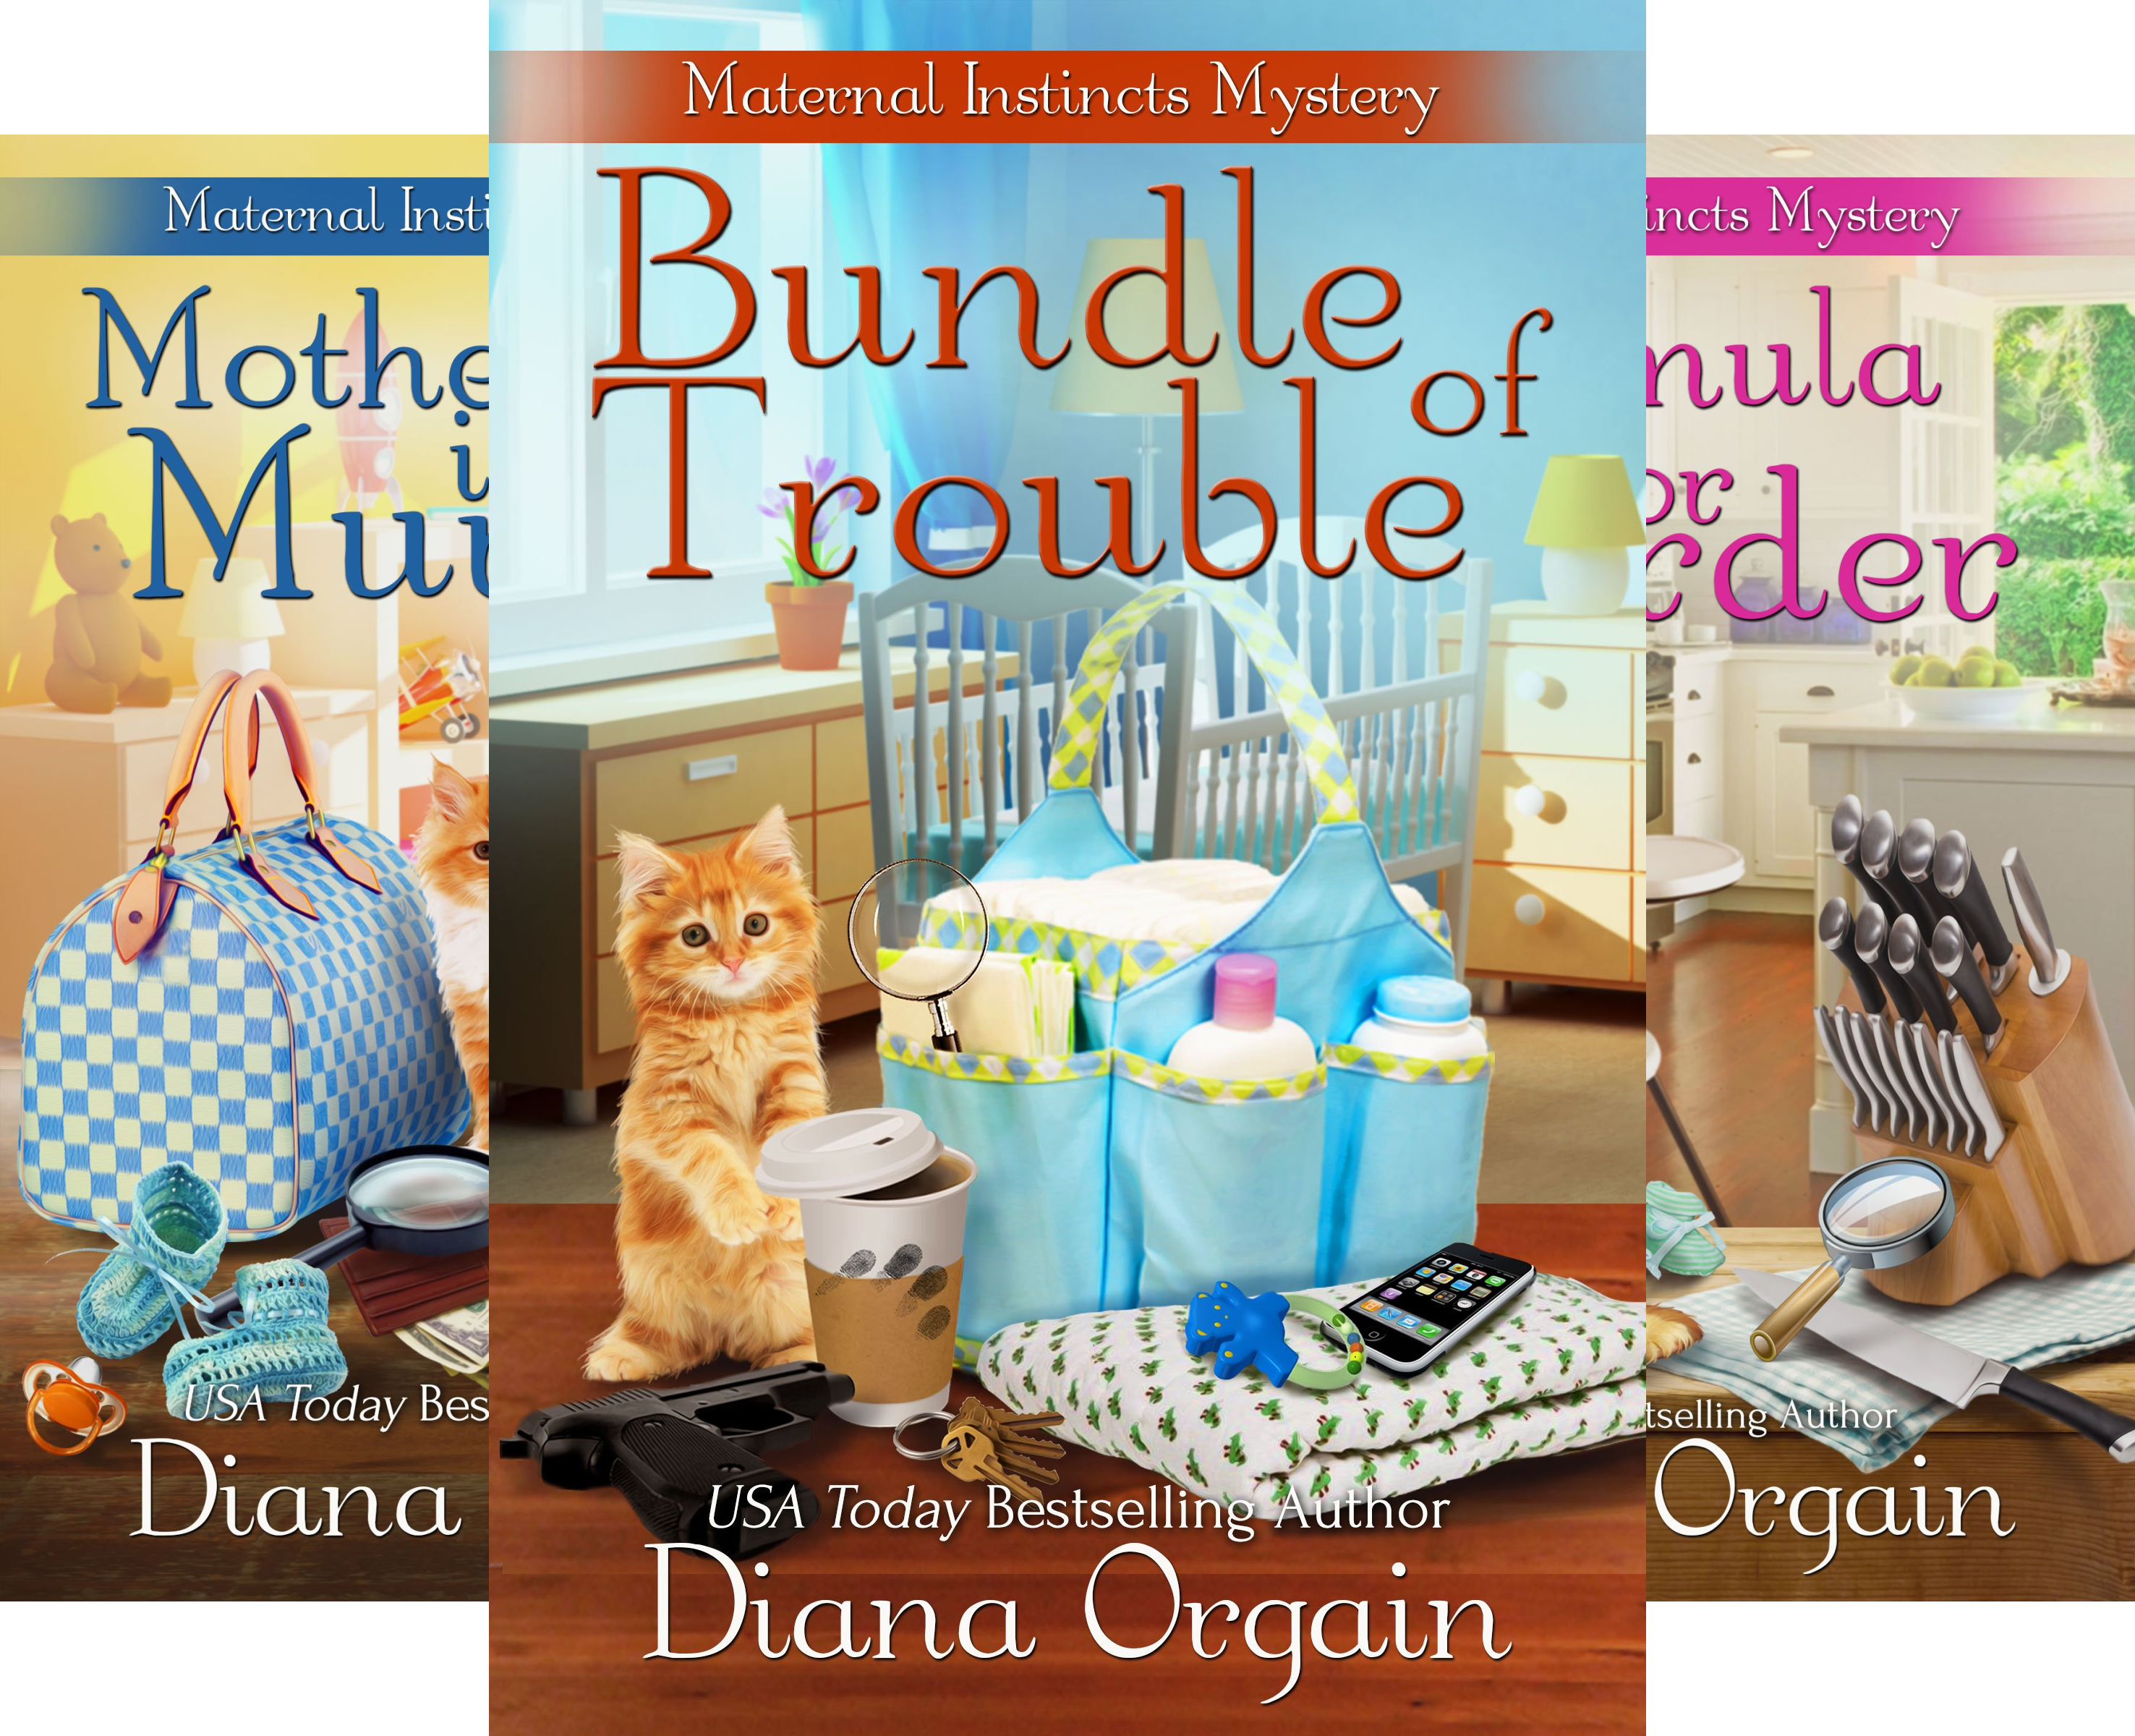 A Maternal Instincts Mystery (5 Book Series)